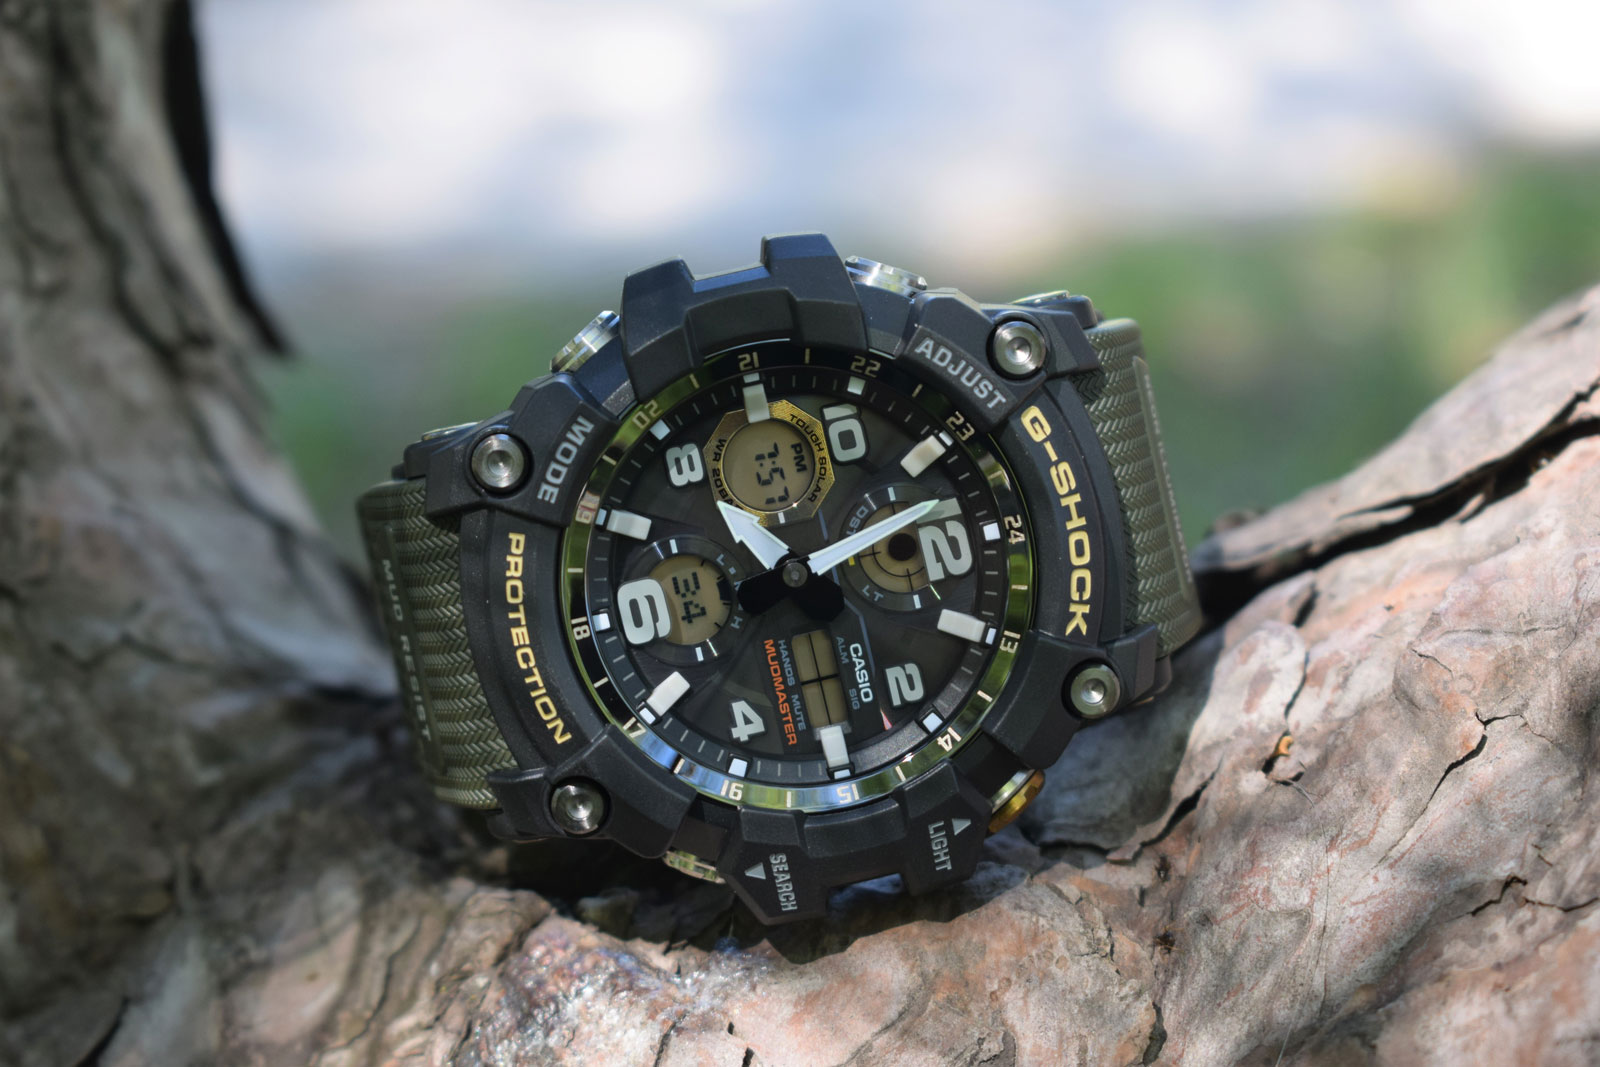 [Live Photos] G-Shock GWG-100-1A3 — work on mistakes